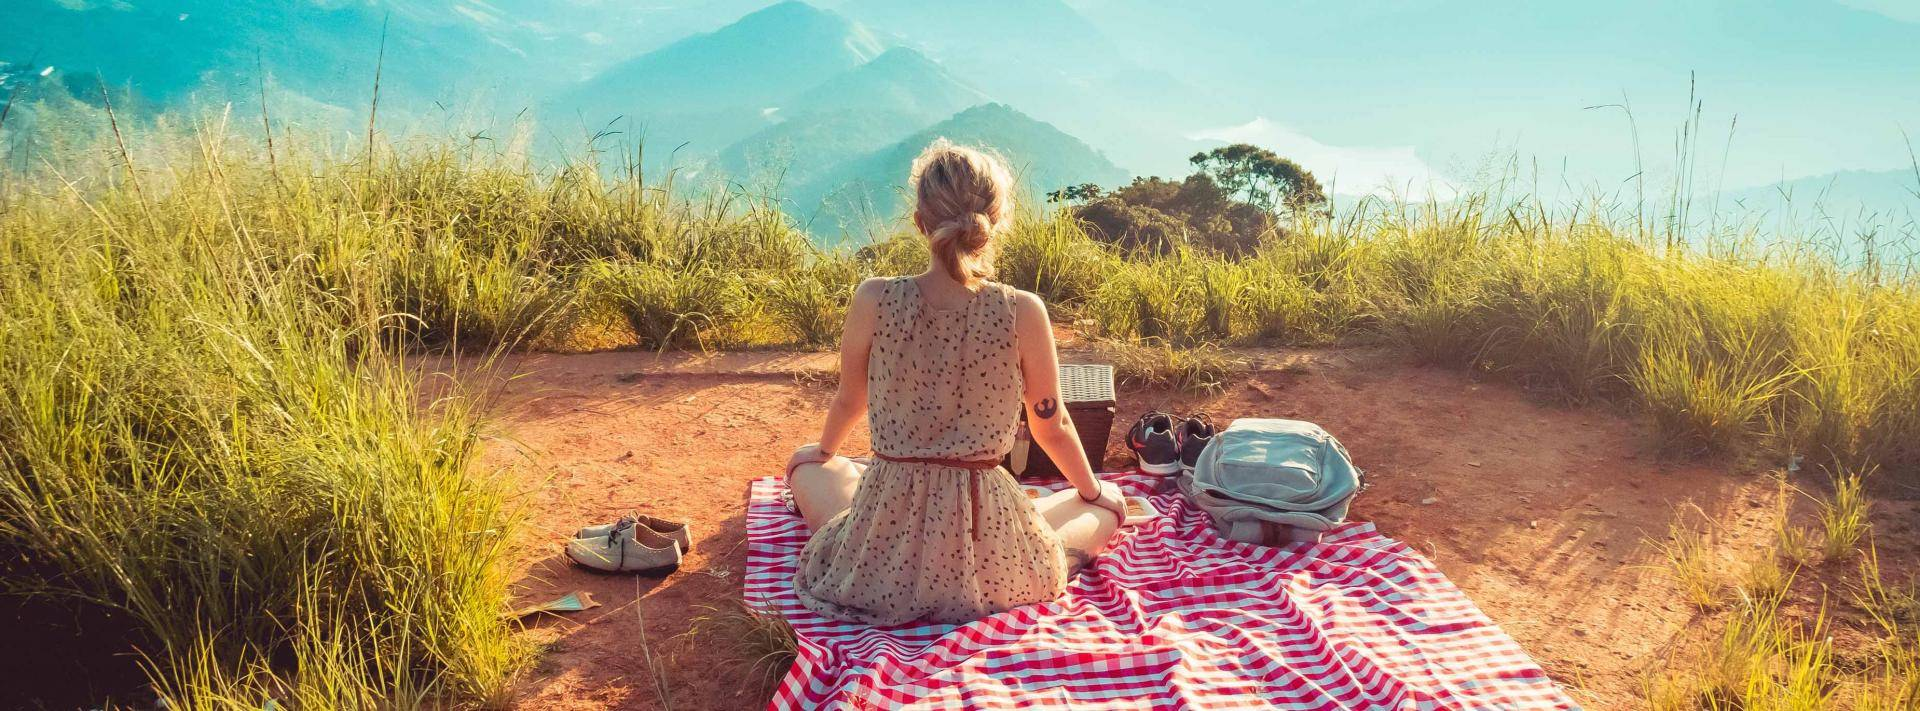 woman sitting on blanket looking at mountains